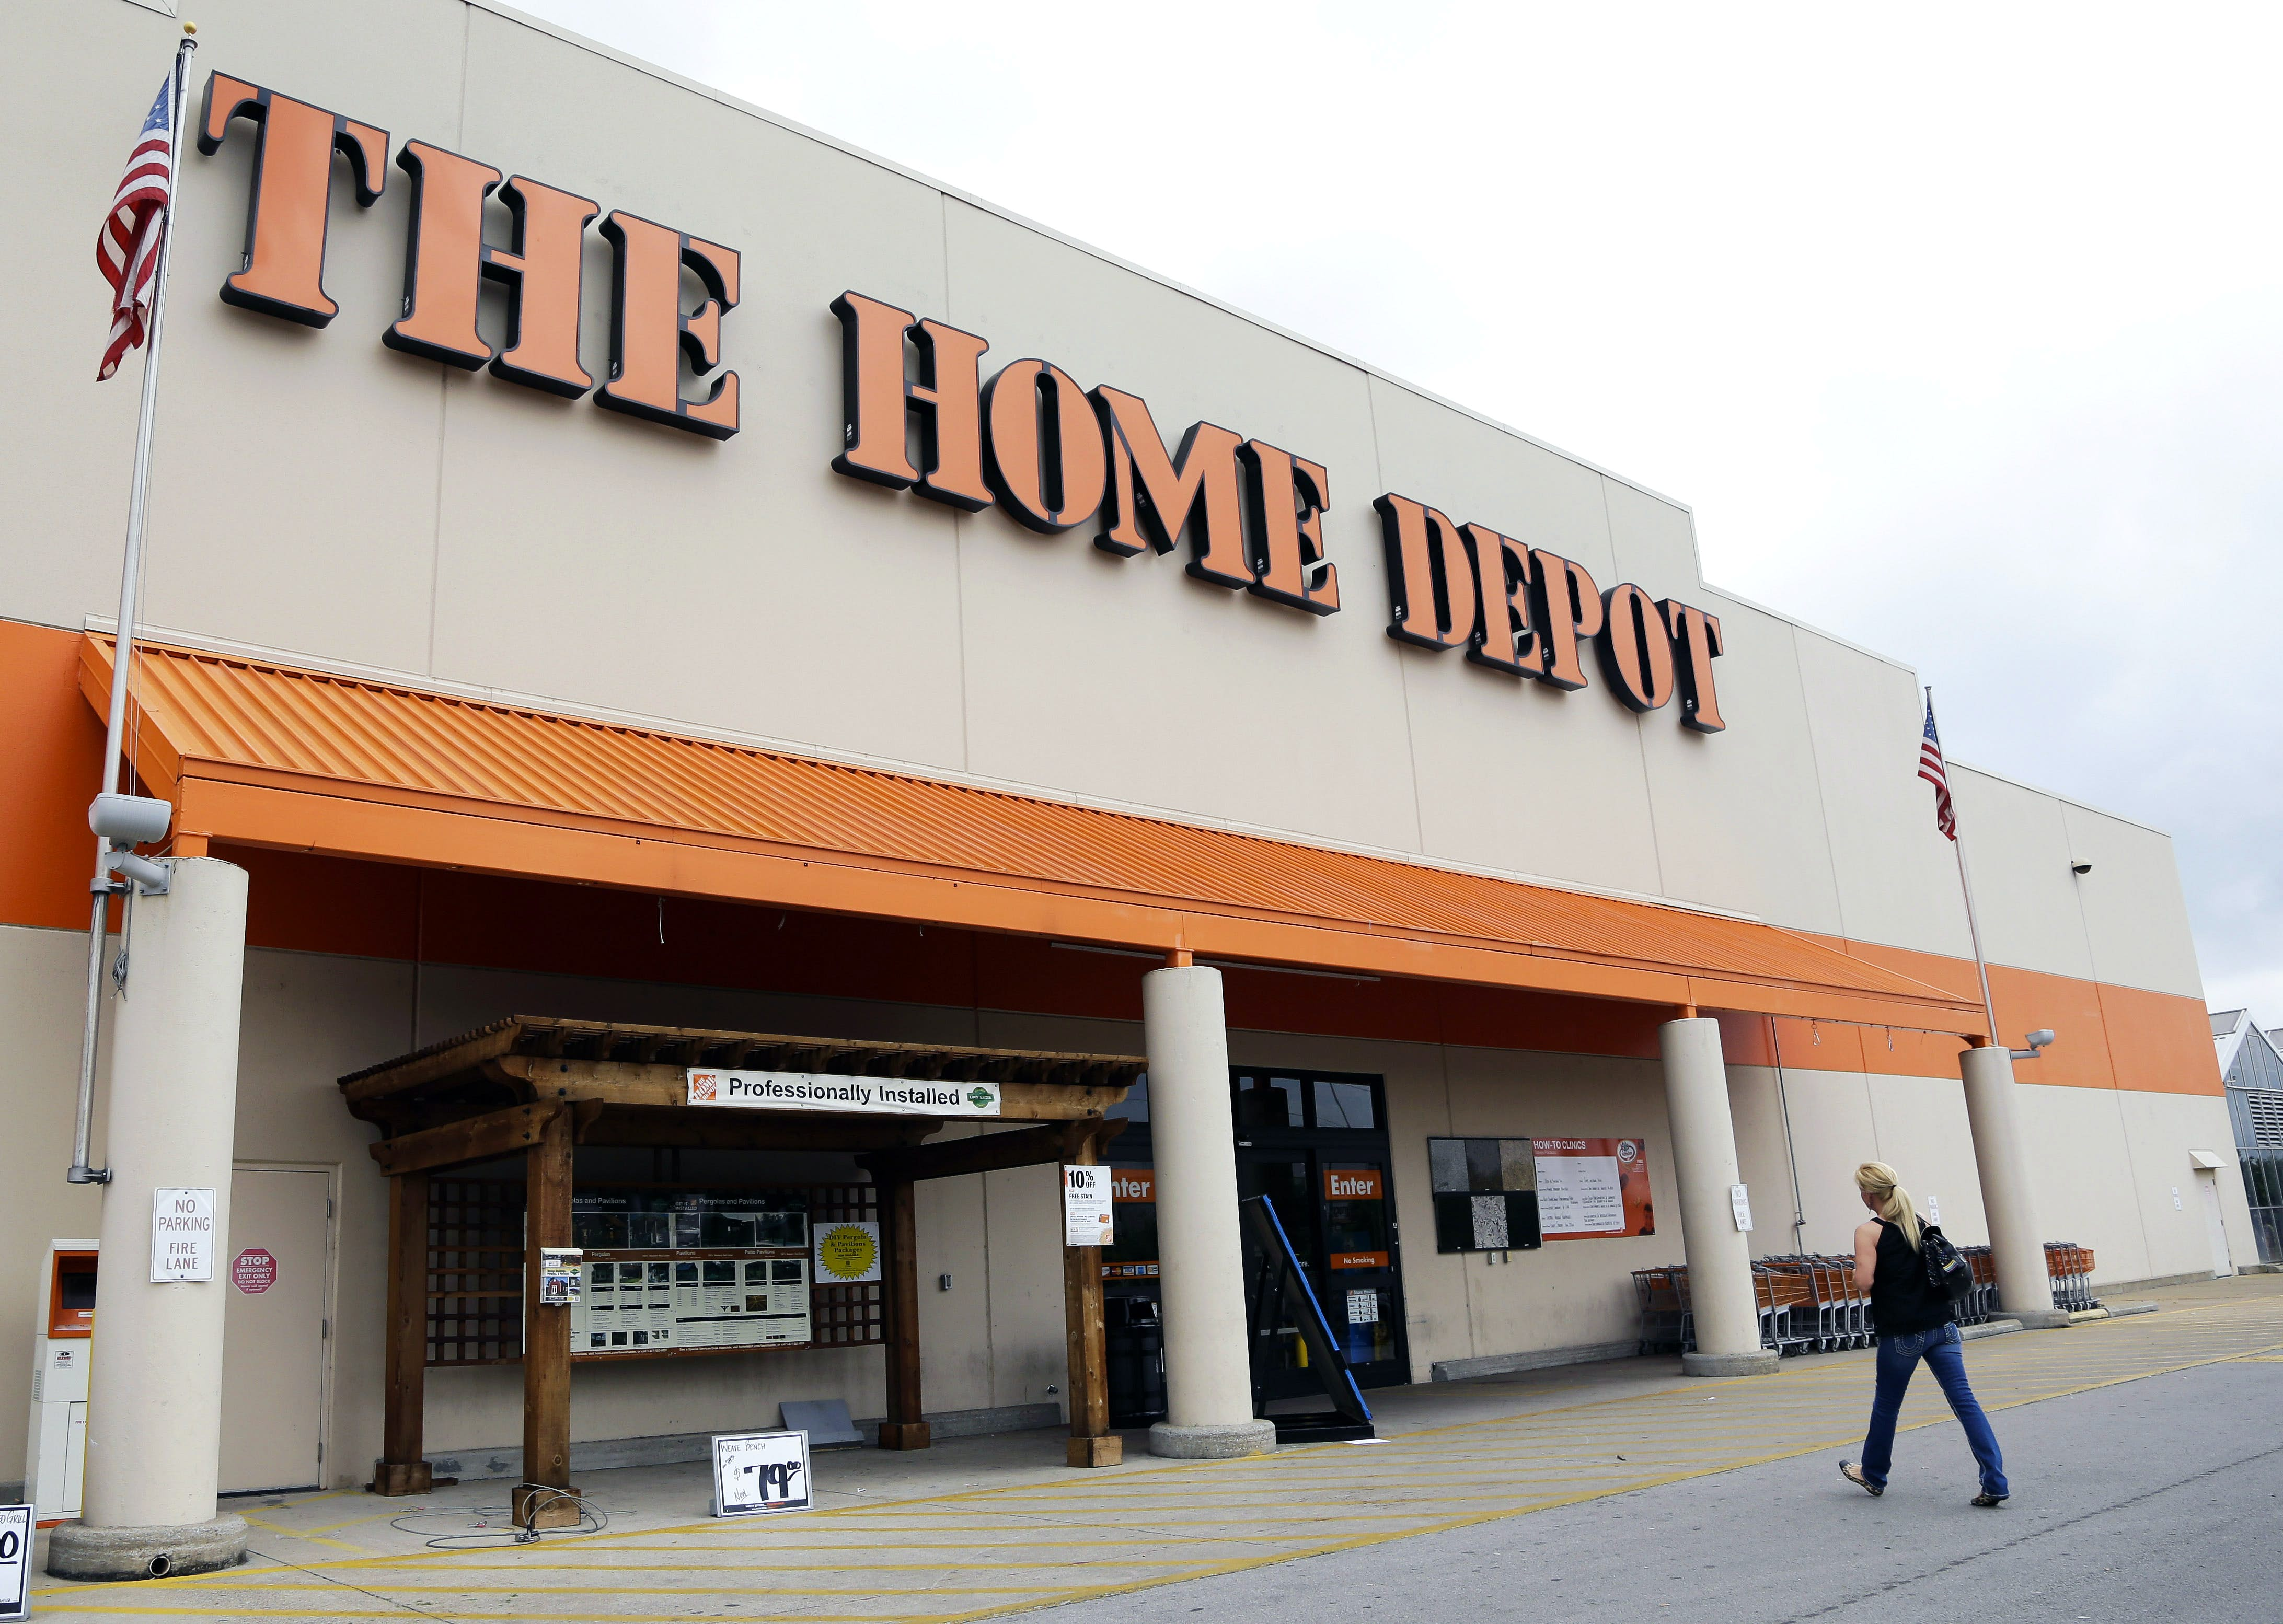 Arlington Man Schemed 1 1 Million Out Of Home Depot By Reusing Receipts For Refunds Arlington